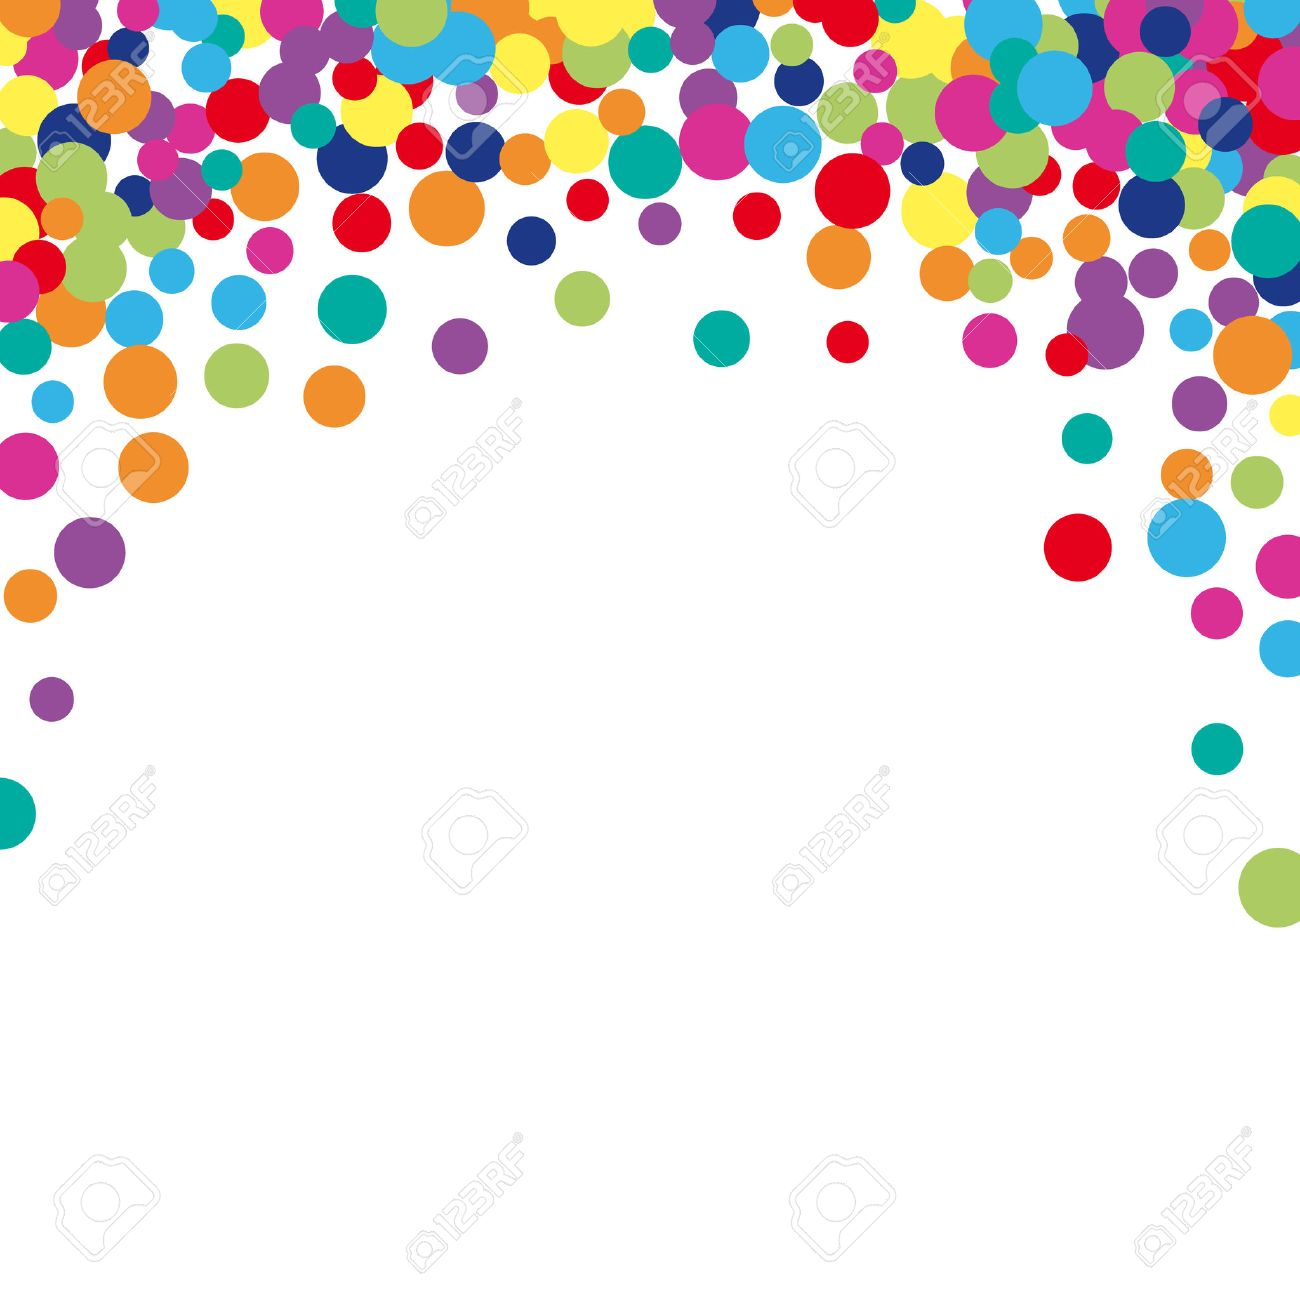 Colorful abstract spot background. Vector illustration for bright design. Art splash backdrop. Modern pattern decoration. Color holiday wallpaper. Fun dot card. Happy mood style. Fiesta drop paint - 57879042